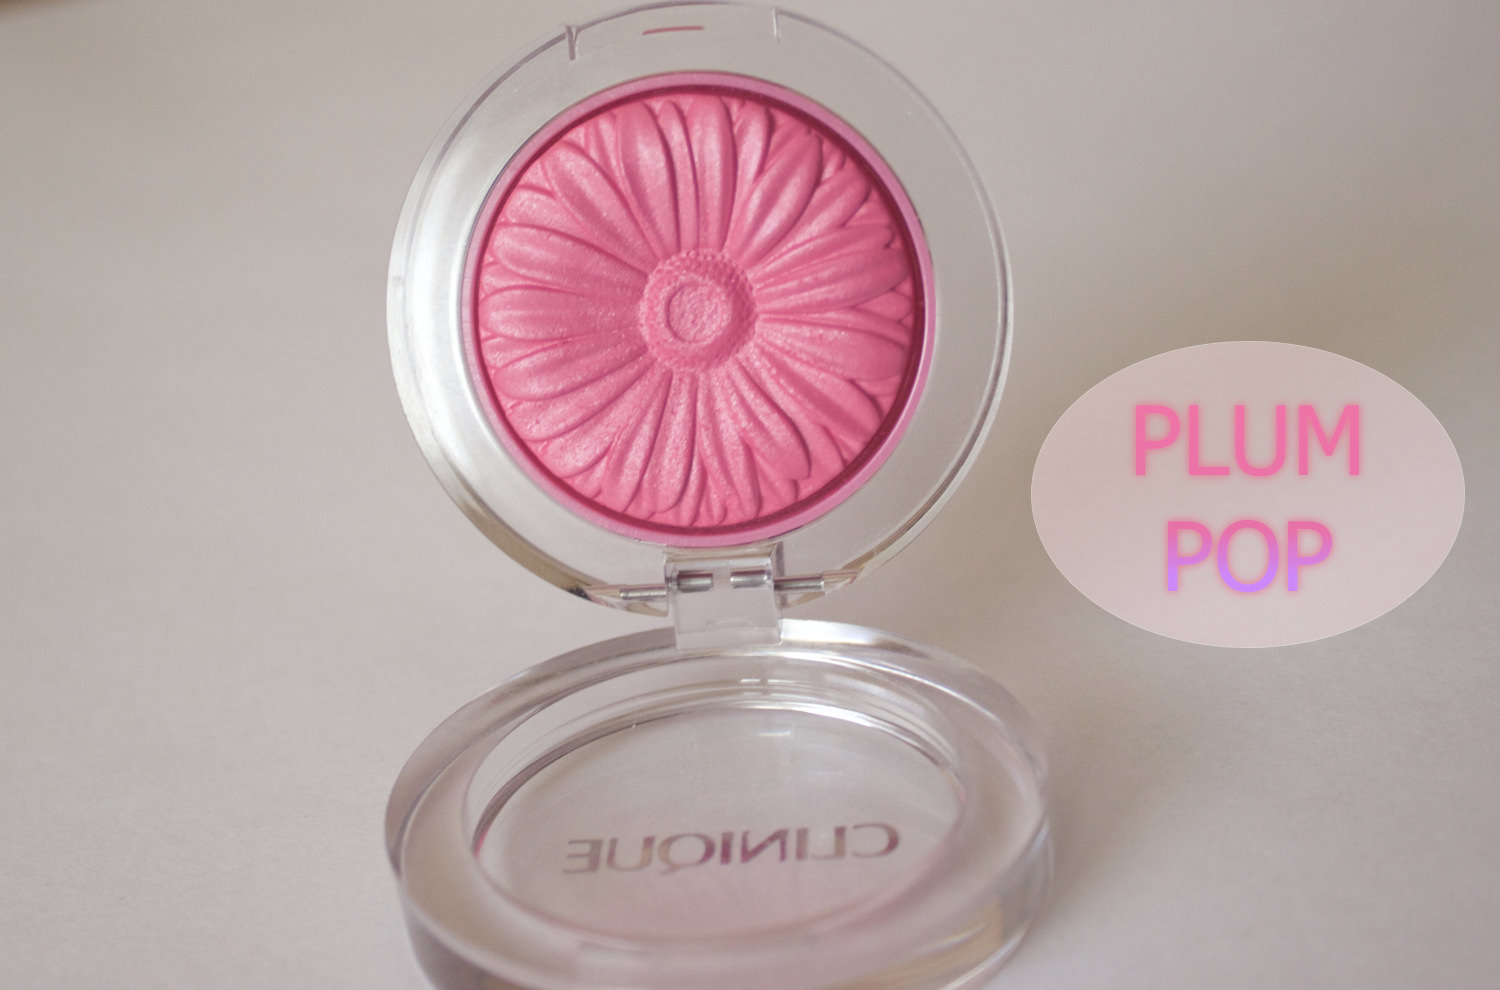 Clinique Cheek Pop blush in Plum Pop